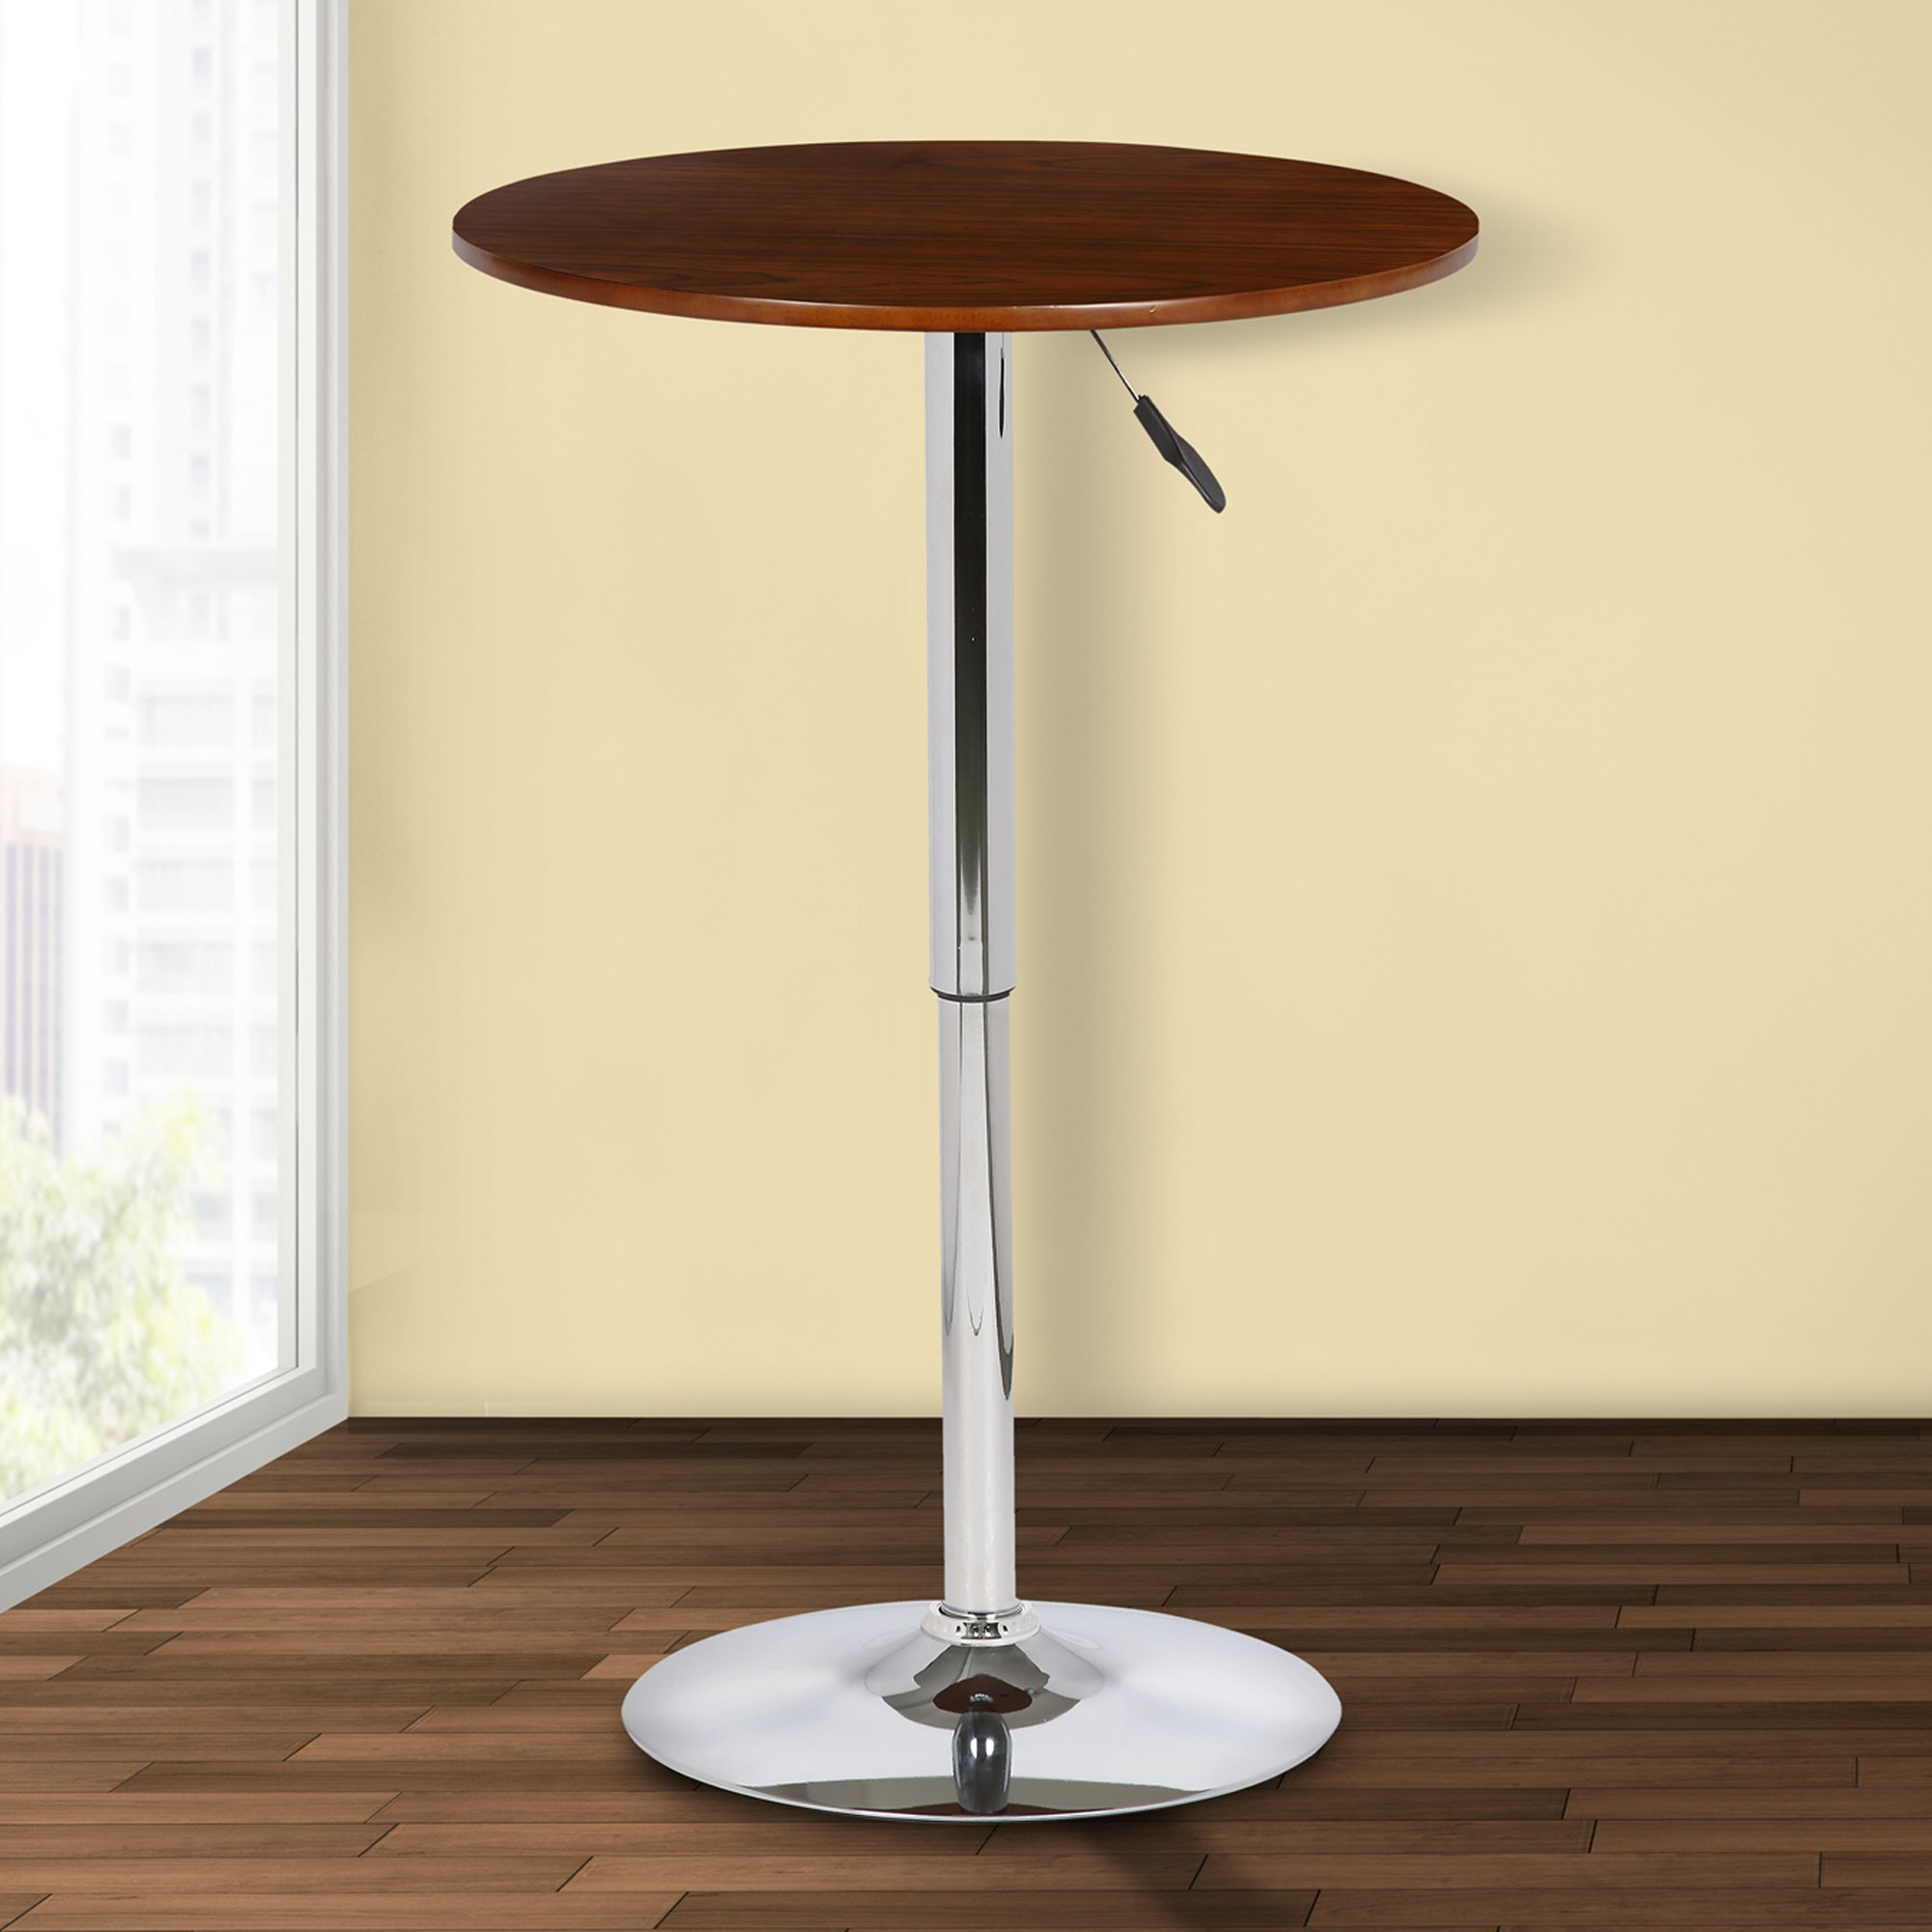 Armen Living LCBEPUWA Bentley Adjustable Pub Tables with Walnut Wood Finish Wood and Chrome Finish